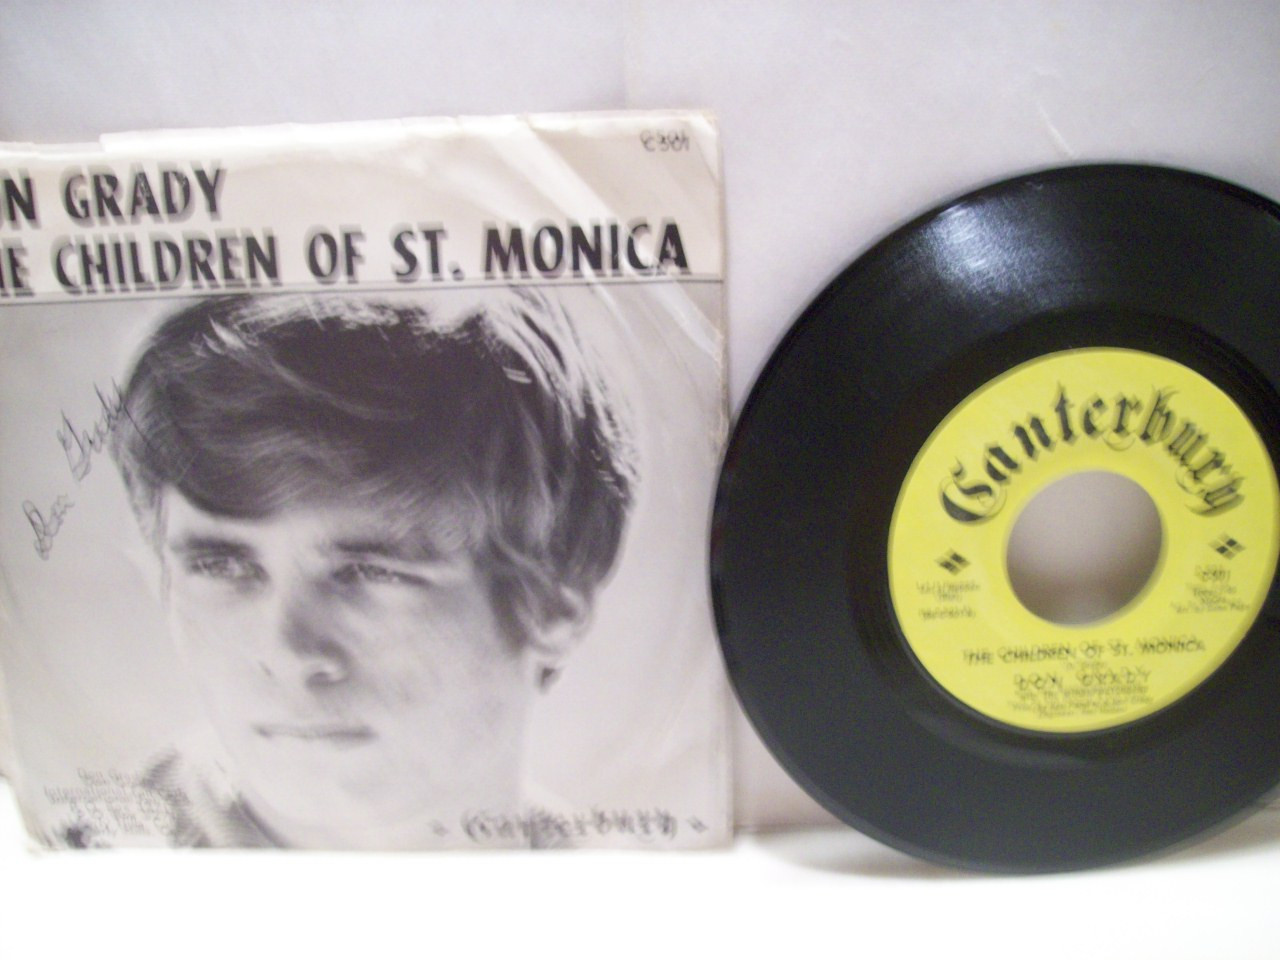 Grady, Don 45 RPM Record with Picture Sleeve Signed Autograph The Children of St. Monica My Three Sons